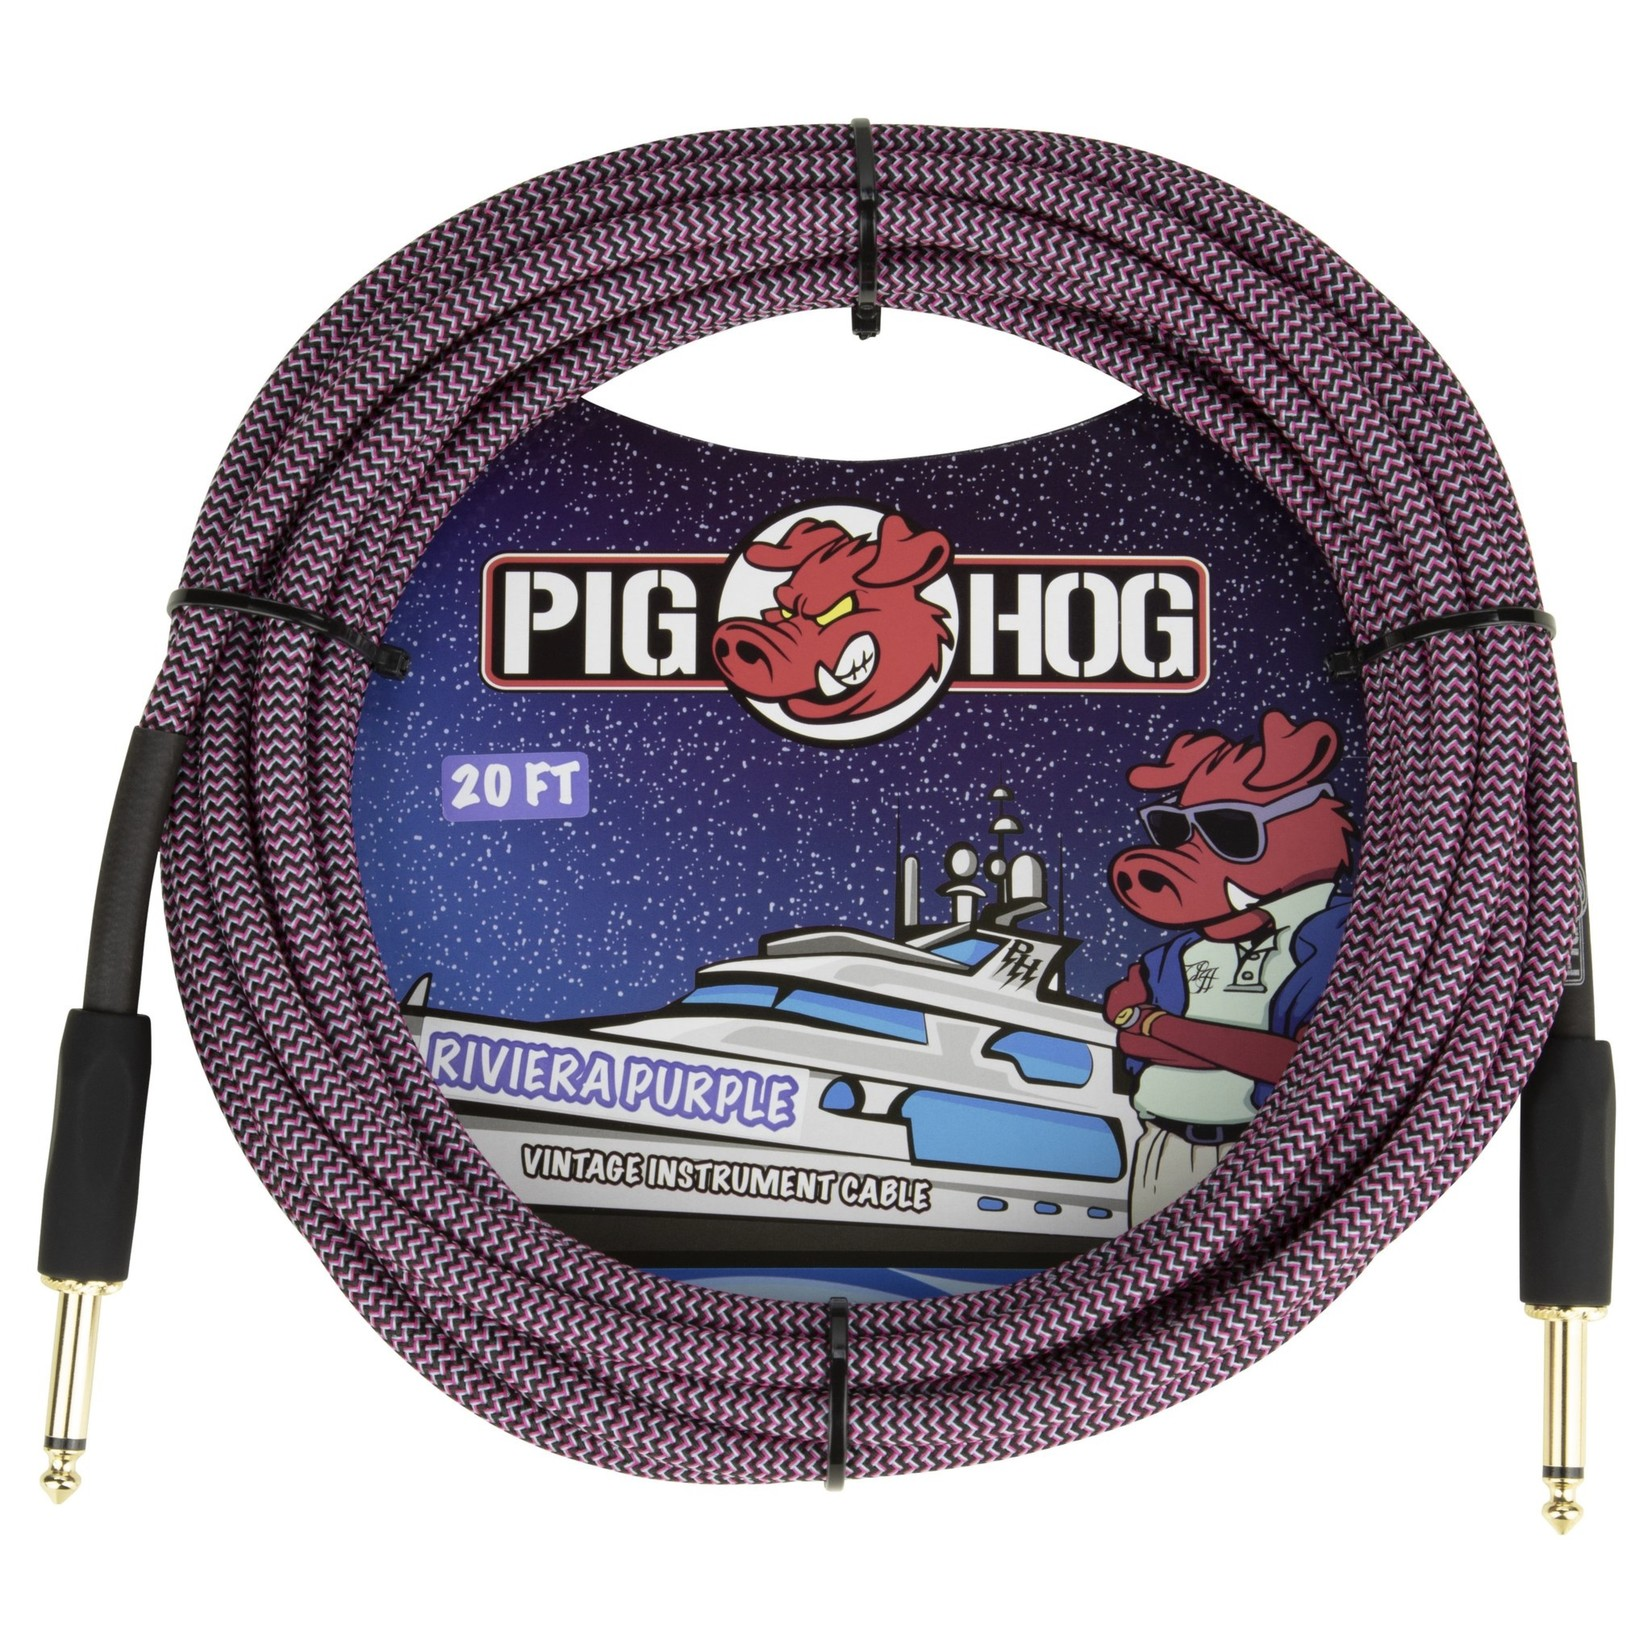 "Pig Hog Pig Hog 20-Foot Vintage Woven Instrument Cable, 1/4"" Straight-Straight Riviera Purple - New 2020!"